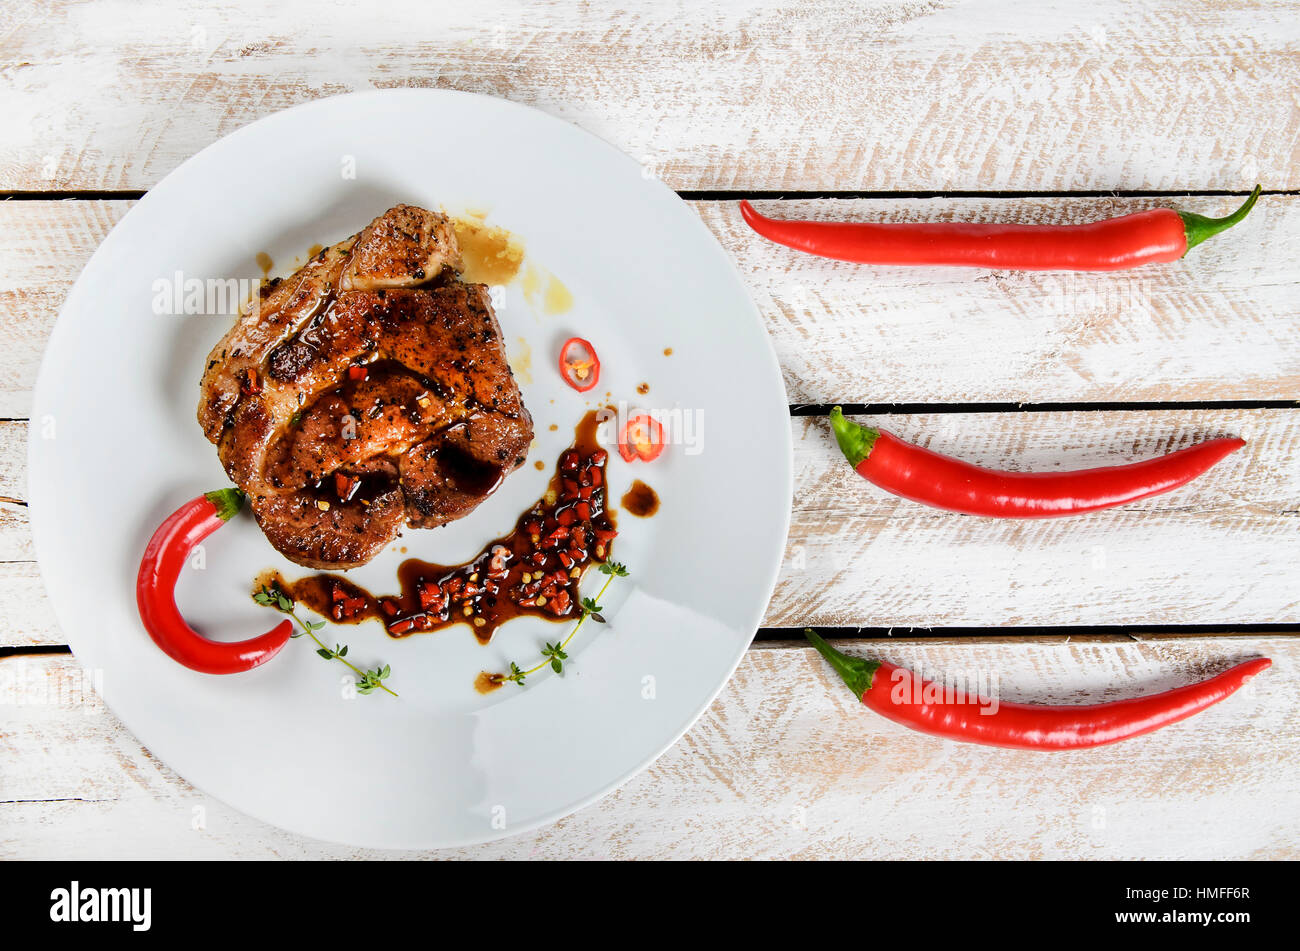 meat with spices in a pan, rosemary, and hot chili peppers on a white wooden table background - Stock Image